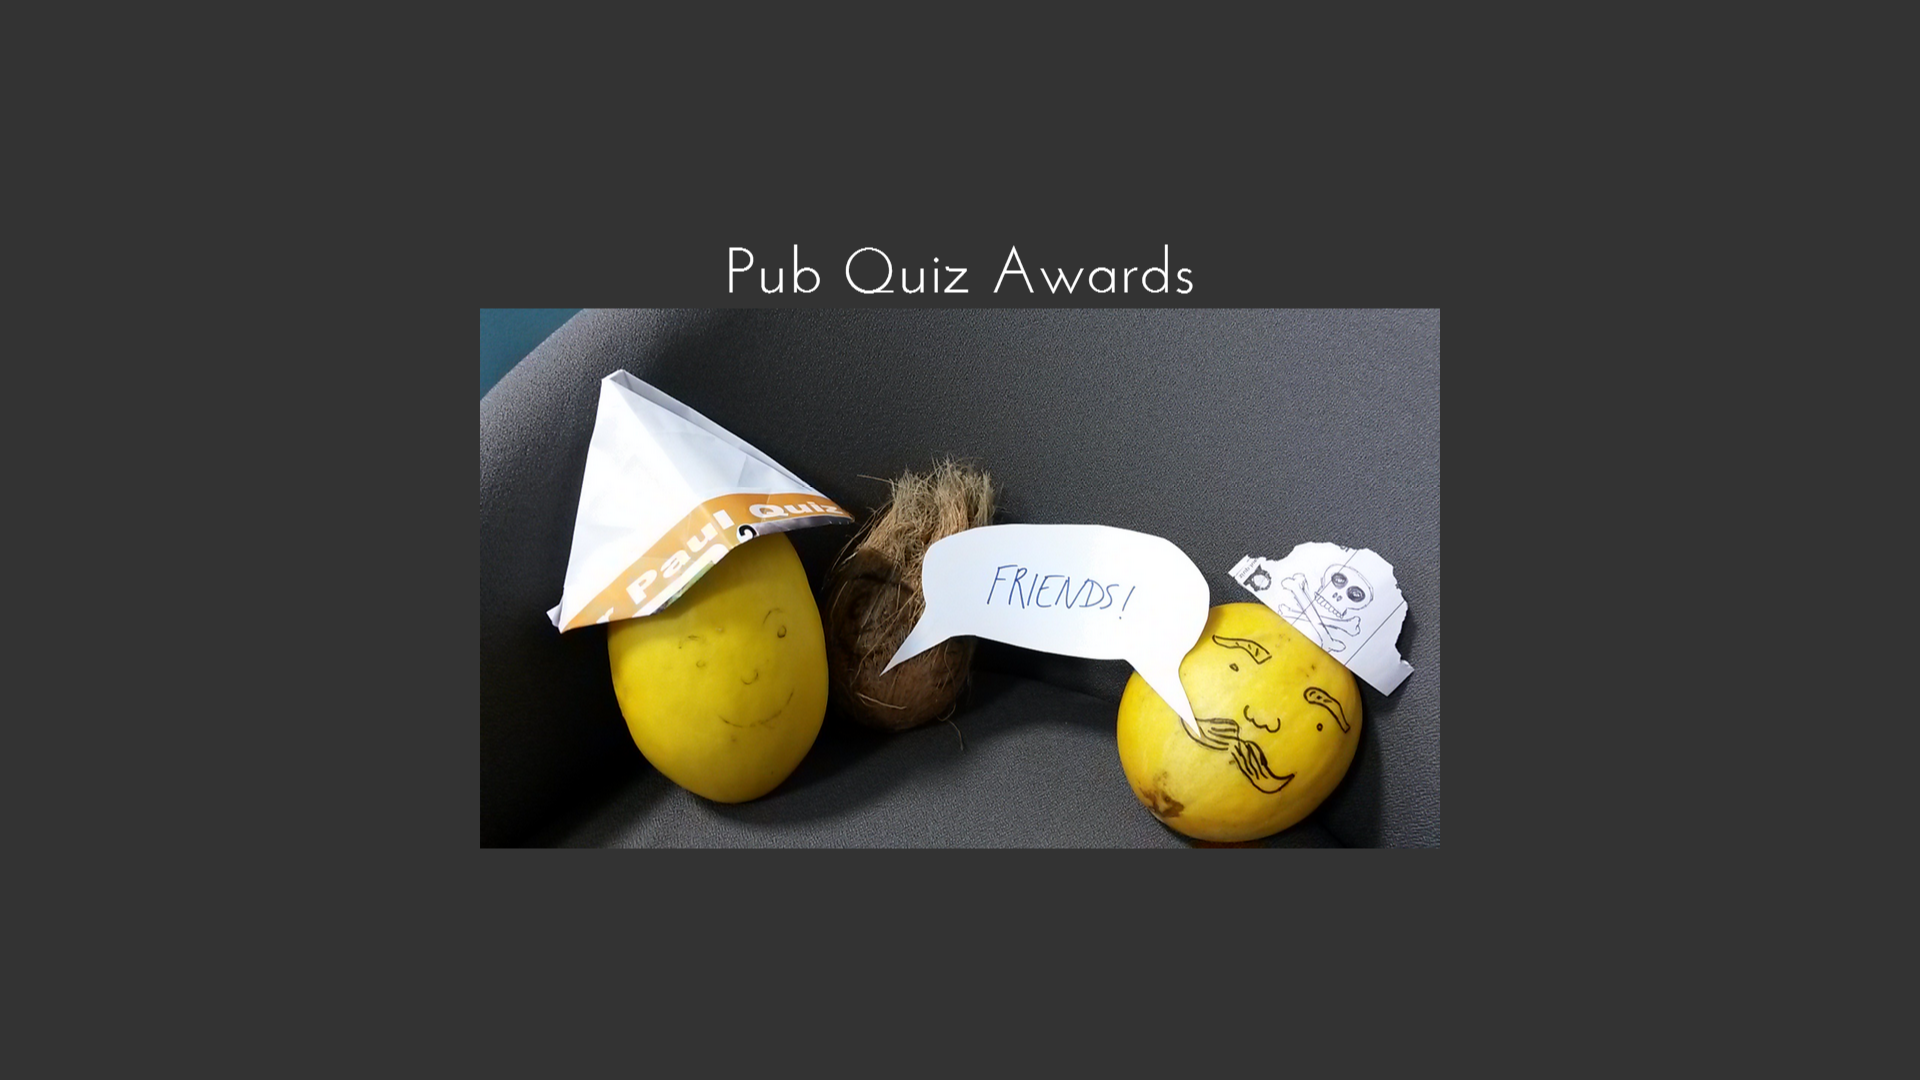 Pub Quiz Awards